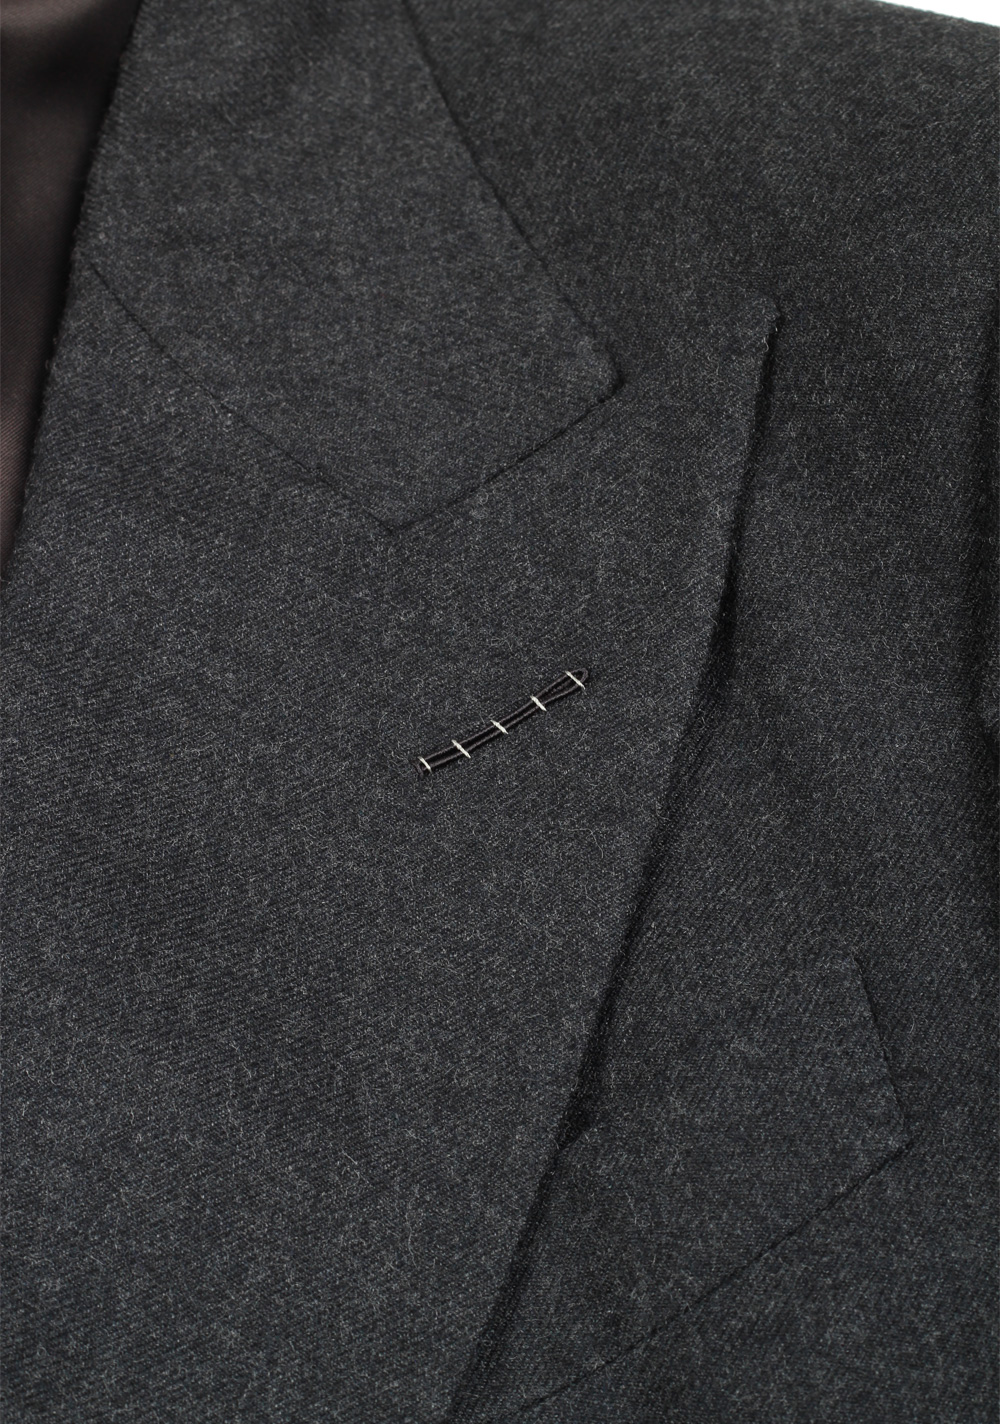 TOM FORD Shelton Double Breasted Gray Suit Size 46 / 36R U.S. Wool   Costume Limité